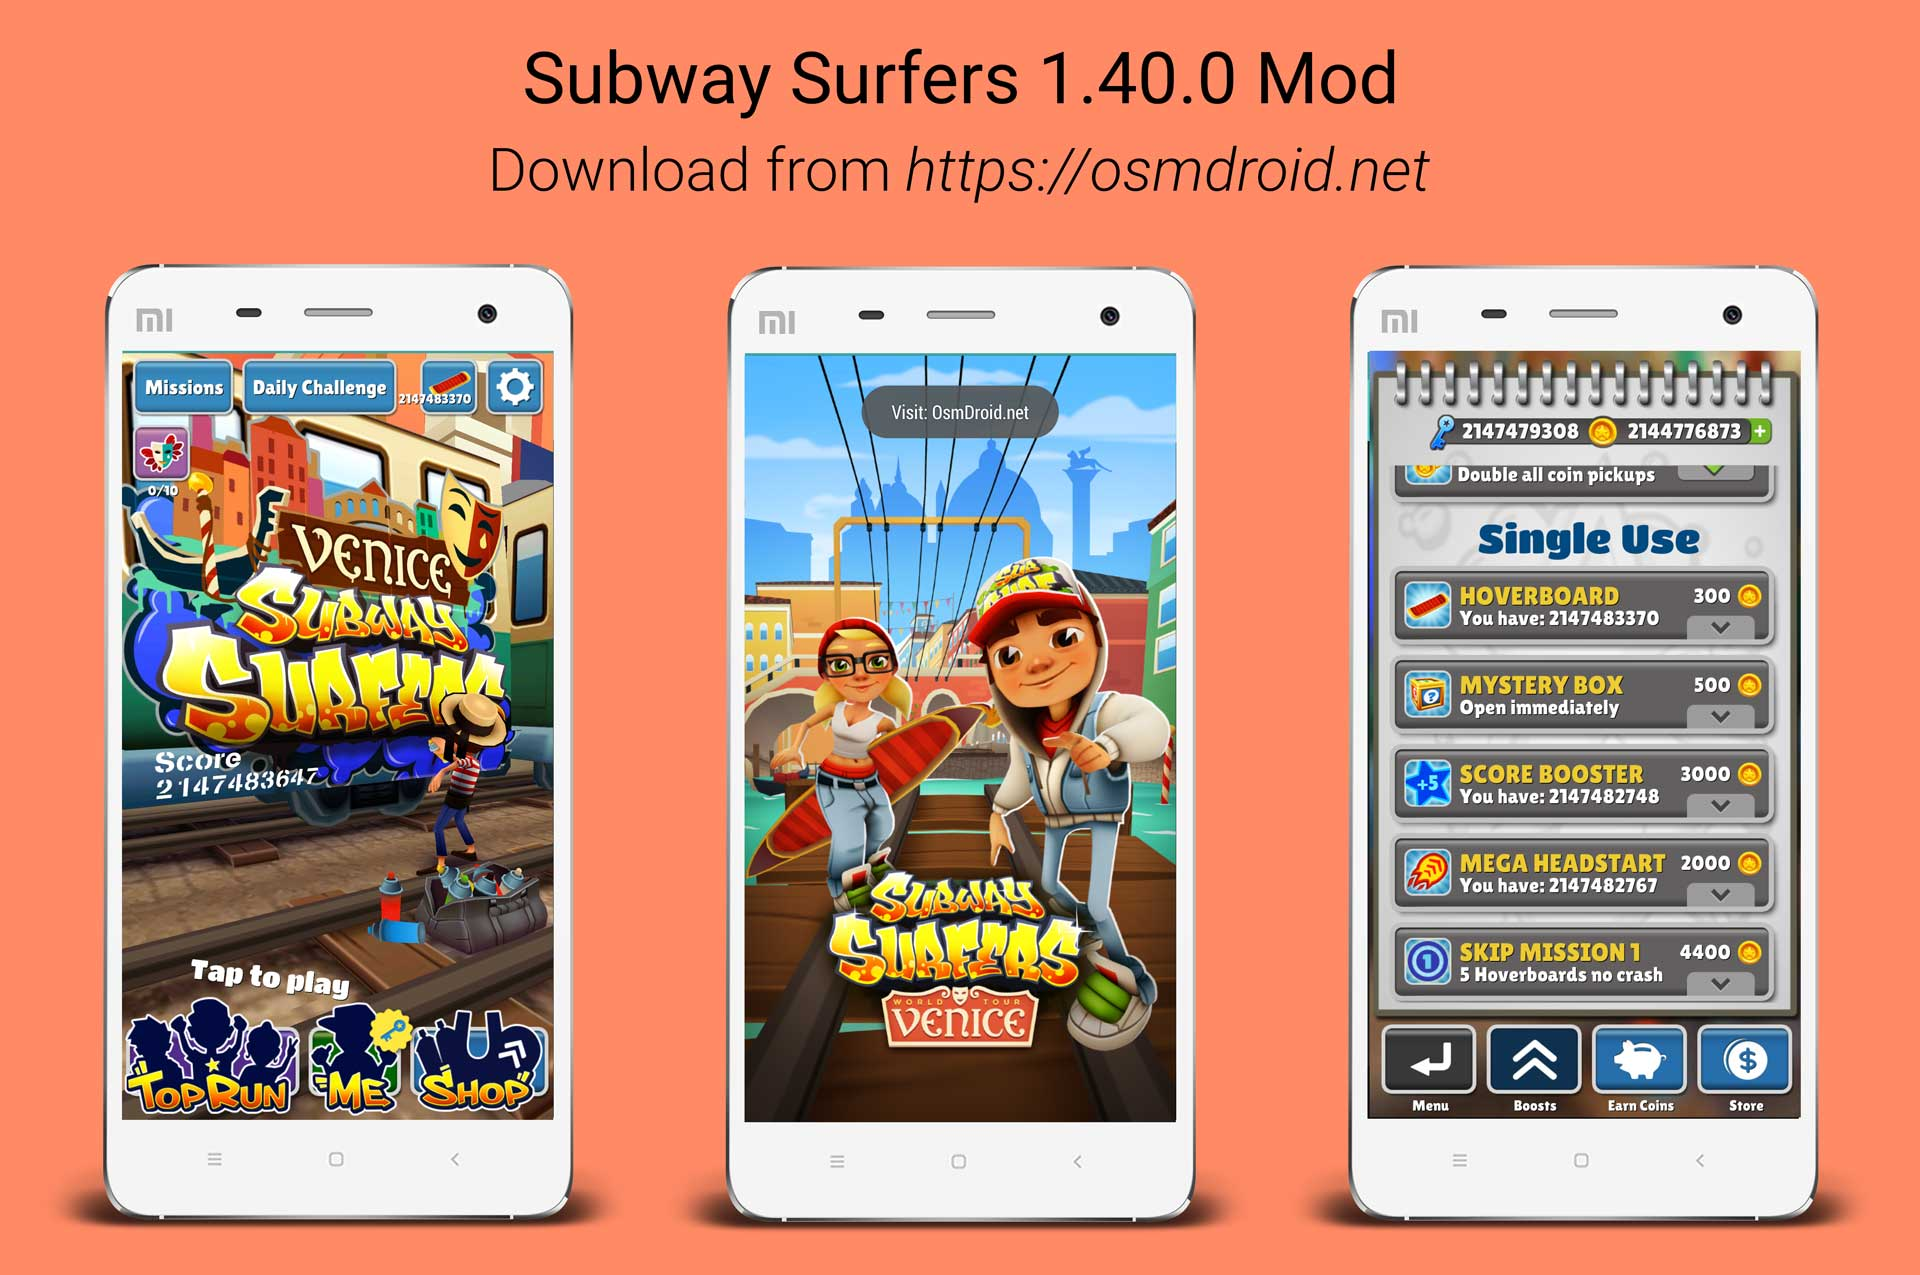 Subway Surfers 1.40.0 Mod APK Android